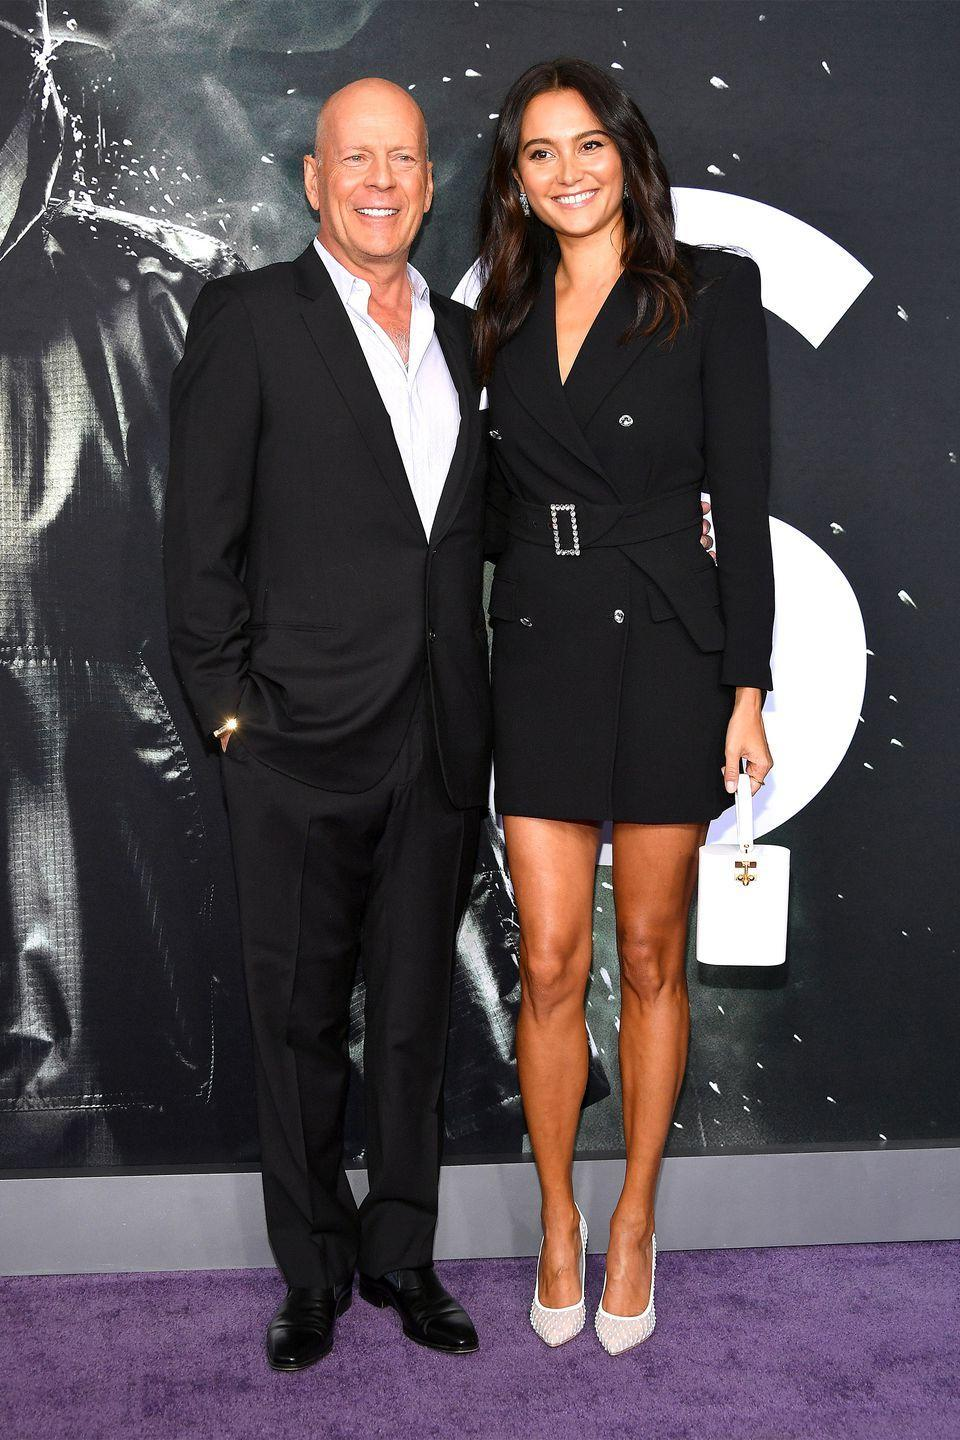 "<p>Married once before (to actress Demi Moore), <em>The Sixth Sense</em> star <a href=""http://www.dailymail.co.uk/tvshowbiz/article-1164038/Bruce-Willis-marries-Demi-double-16-years-younger-Caribbean-ceremony.html"" rel=""nofollow noopener"" target=""_blank"" data-ylk=""slk:married second"" class=""link rapid-noclick-resp"">married second</a> and wife Emma Heming Willis in 2009. The couple now have two daughters together.</p>"